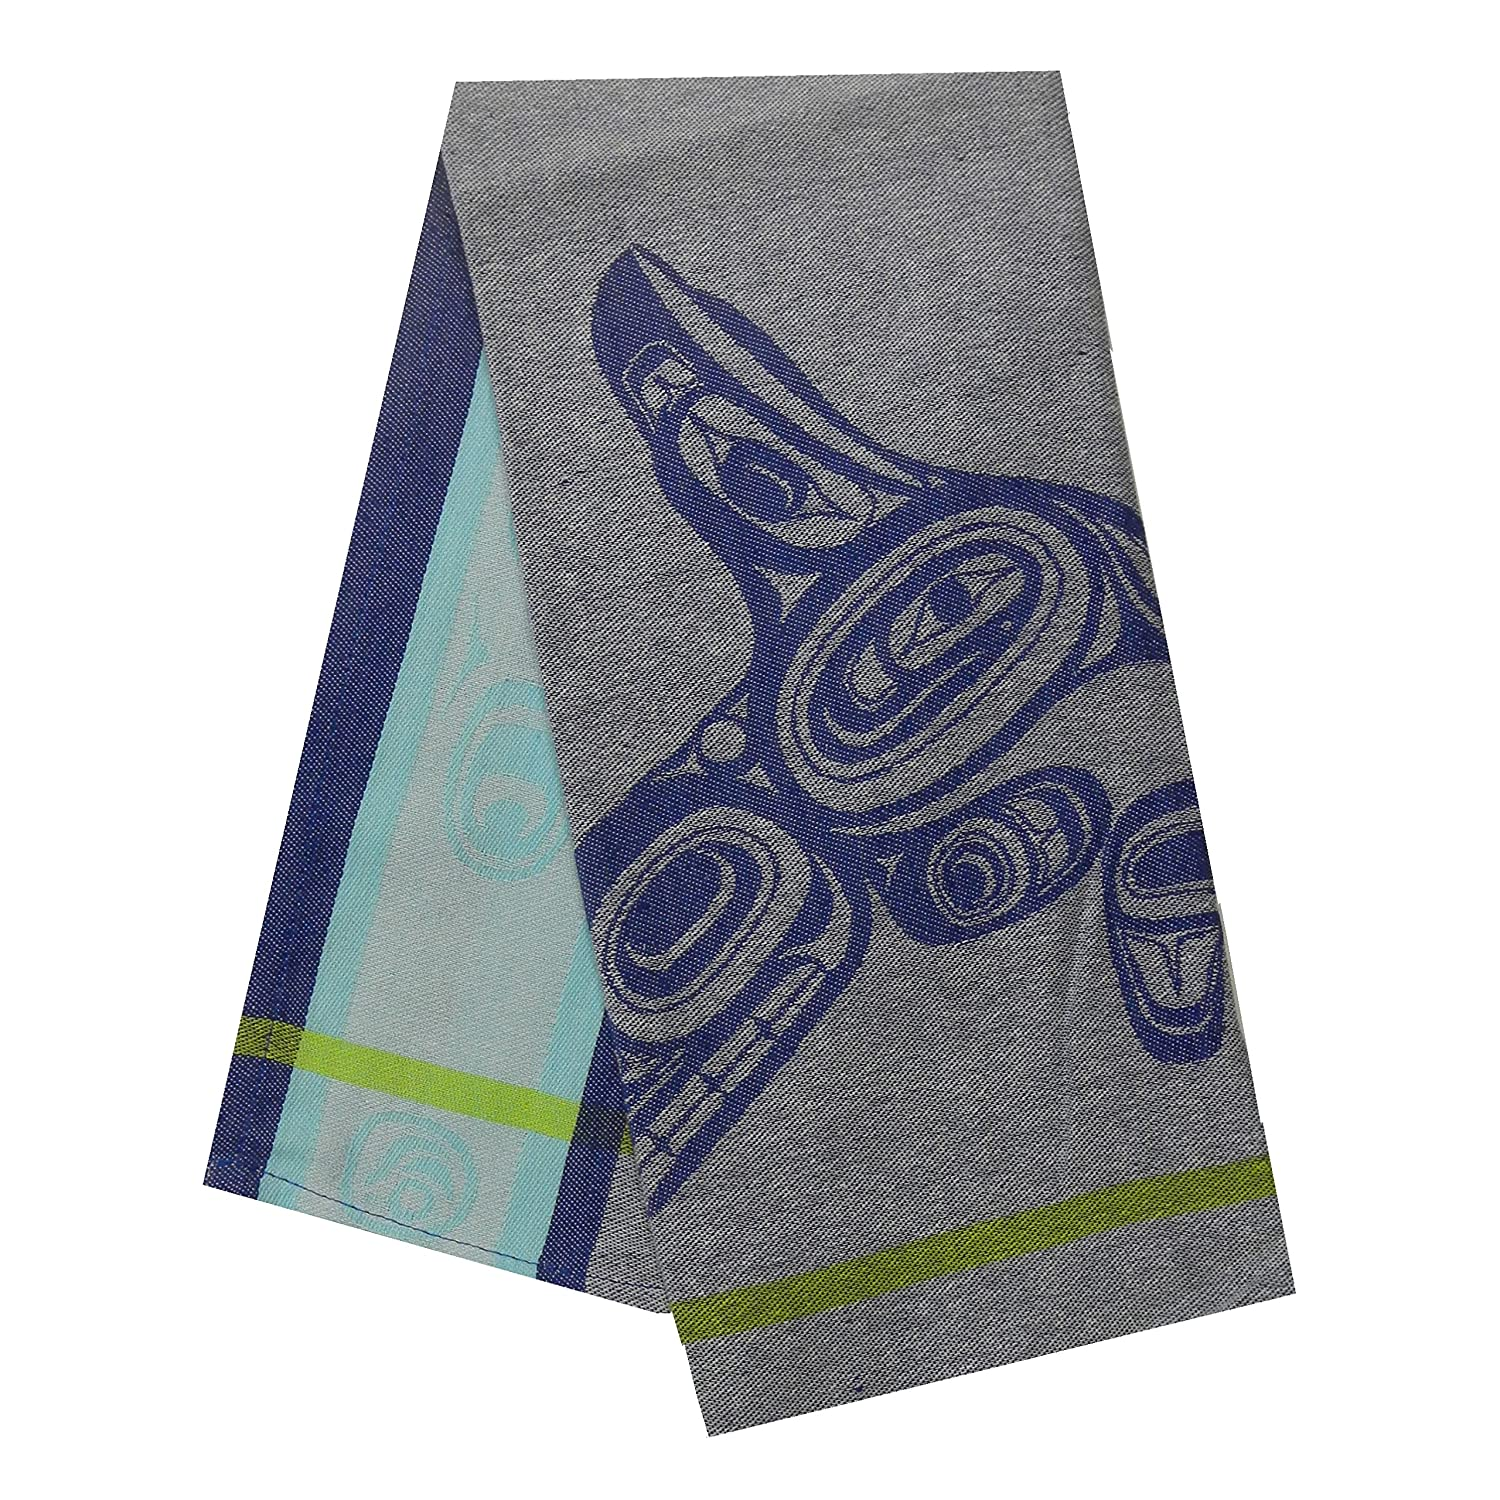 Native Northwest Tea Towel with Whale design